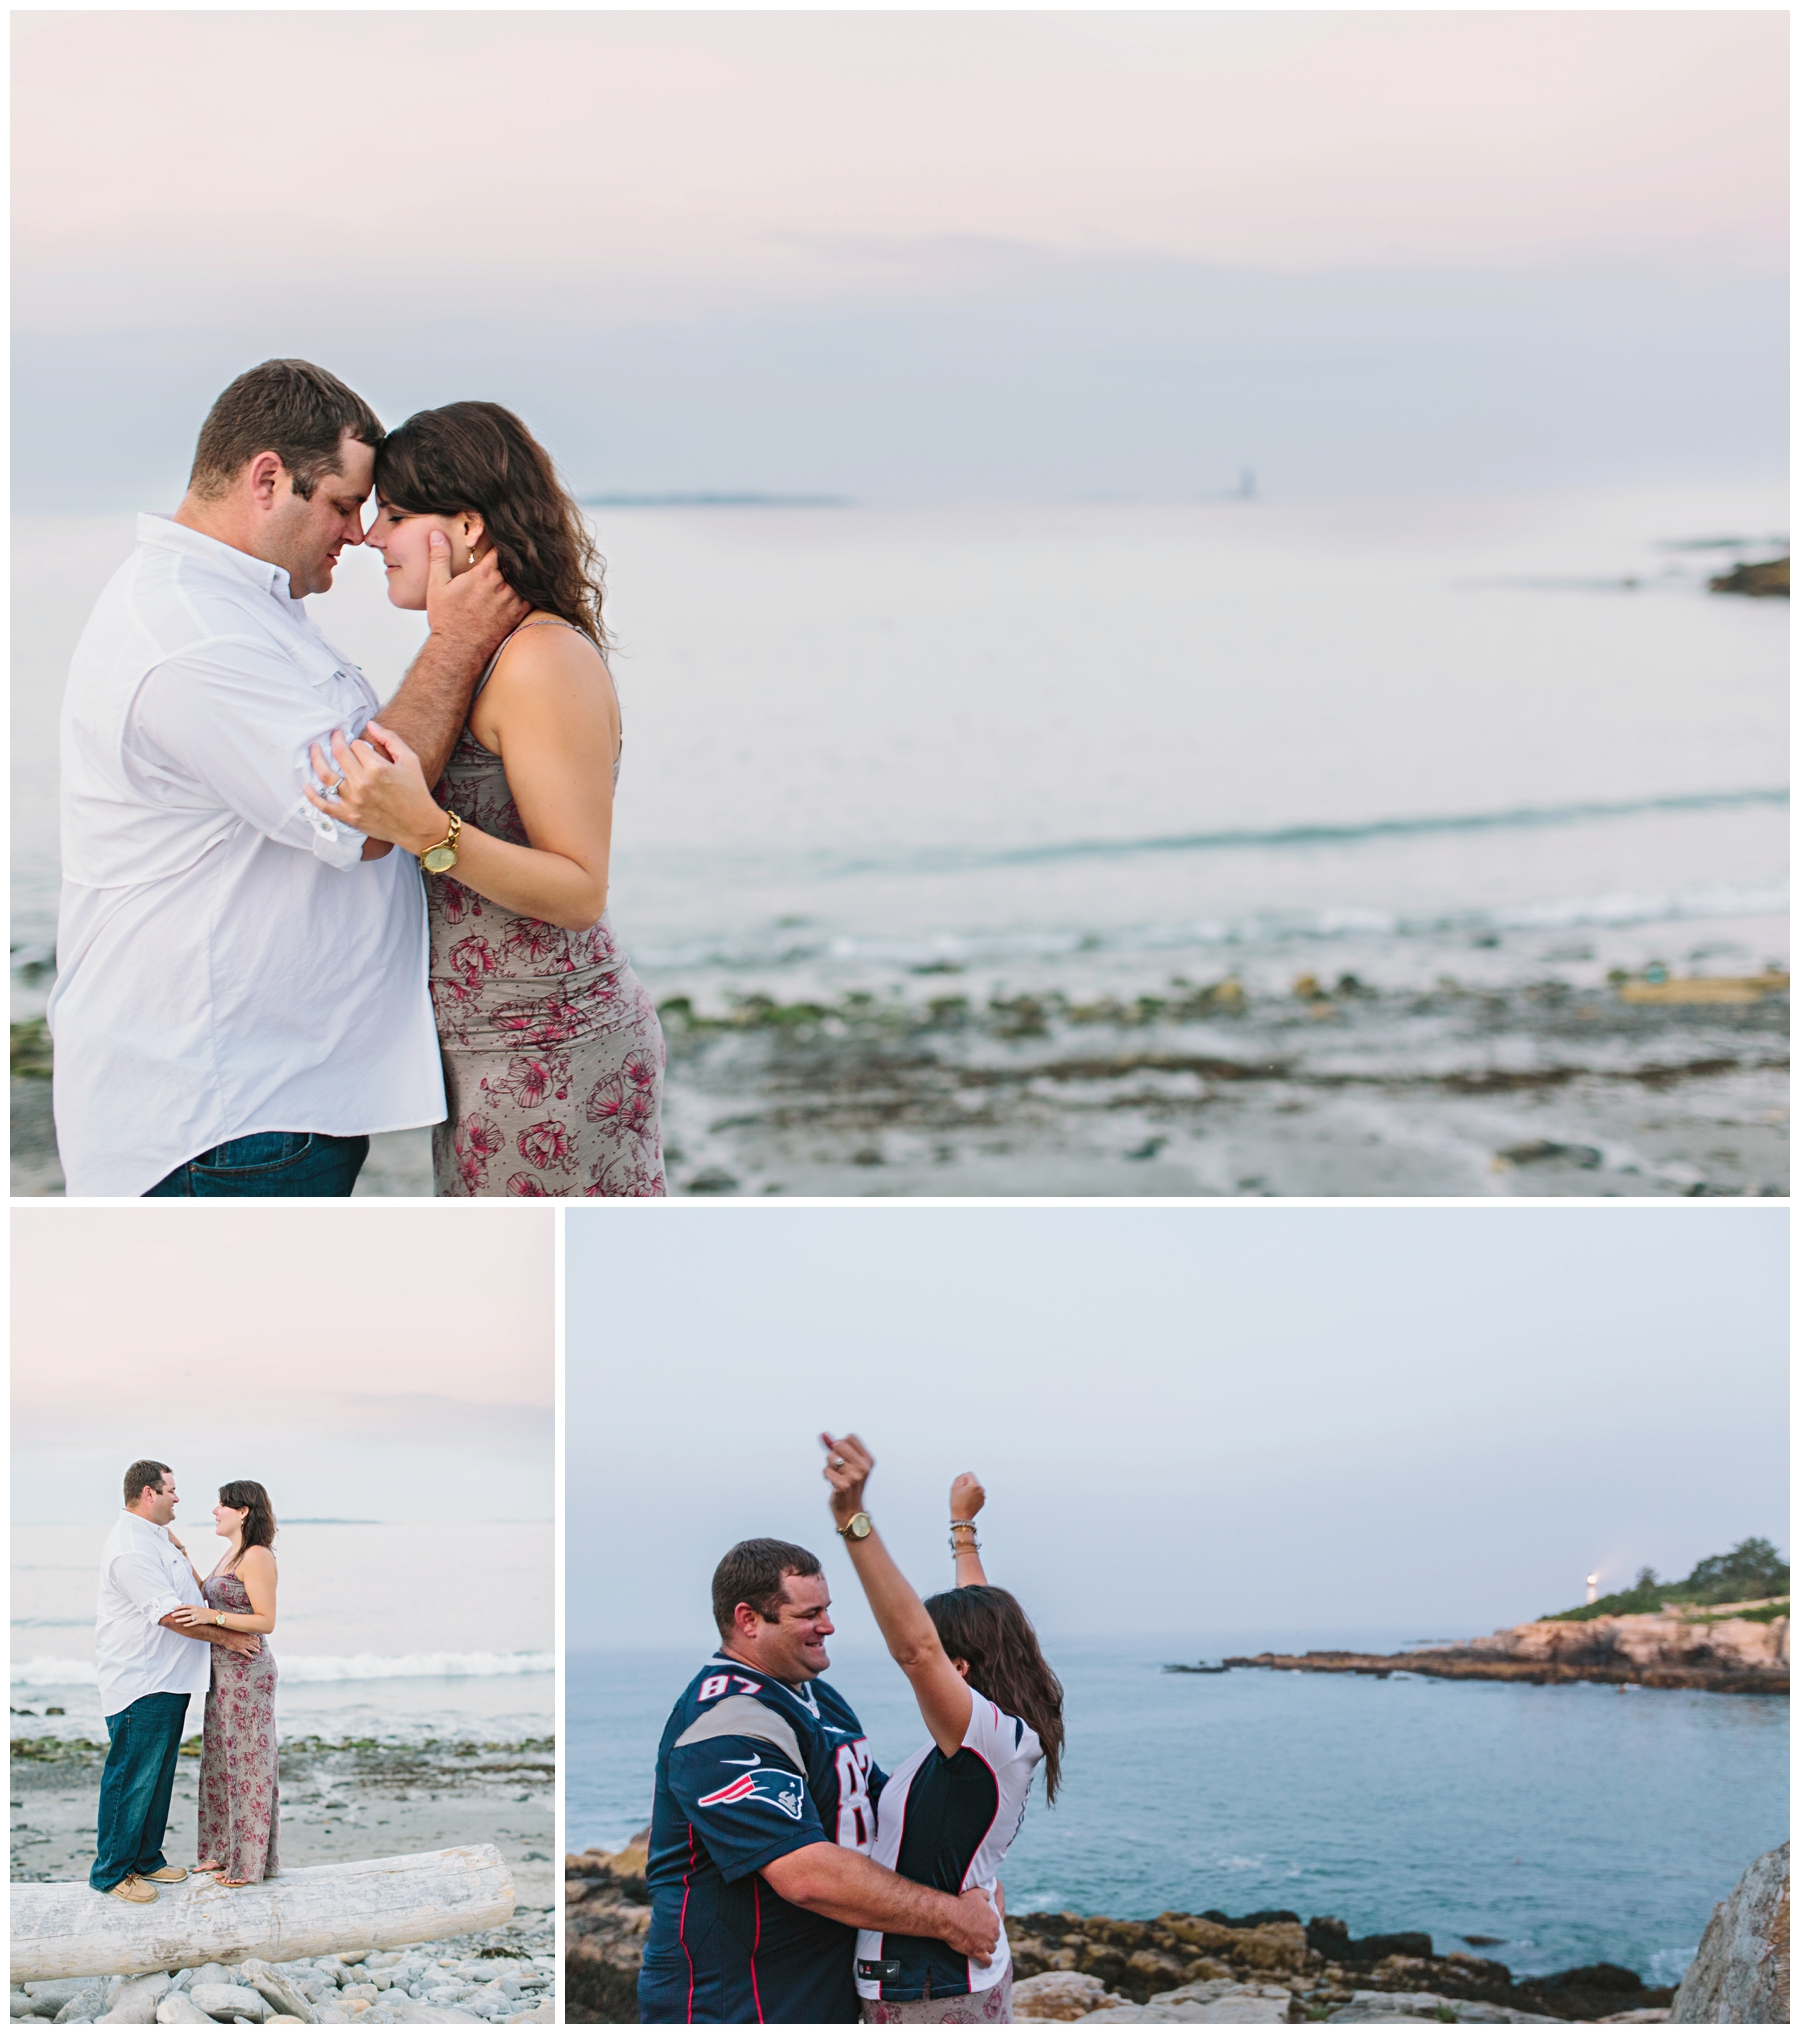 Maine_Photographer_Engagements_FortWilliams_PortlandHeadLight_lighthouse_coastal_seaside-029